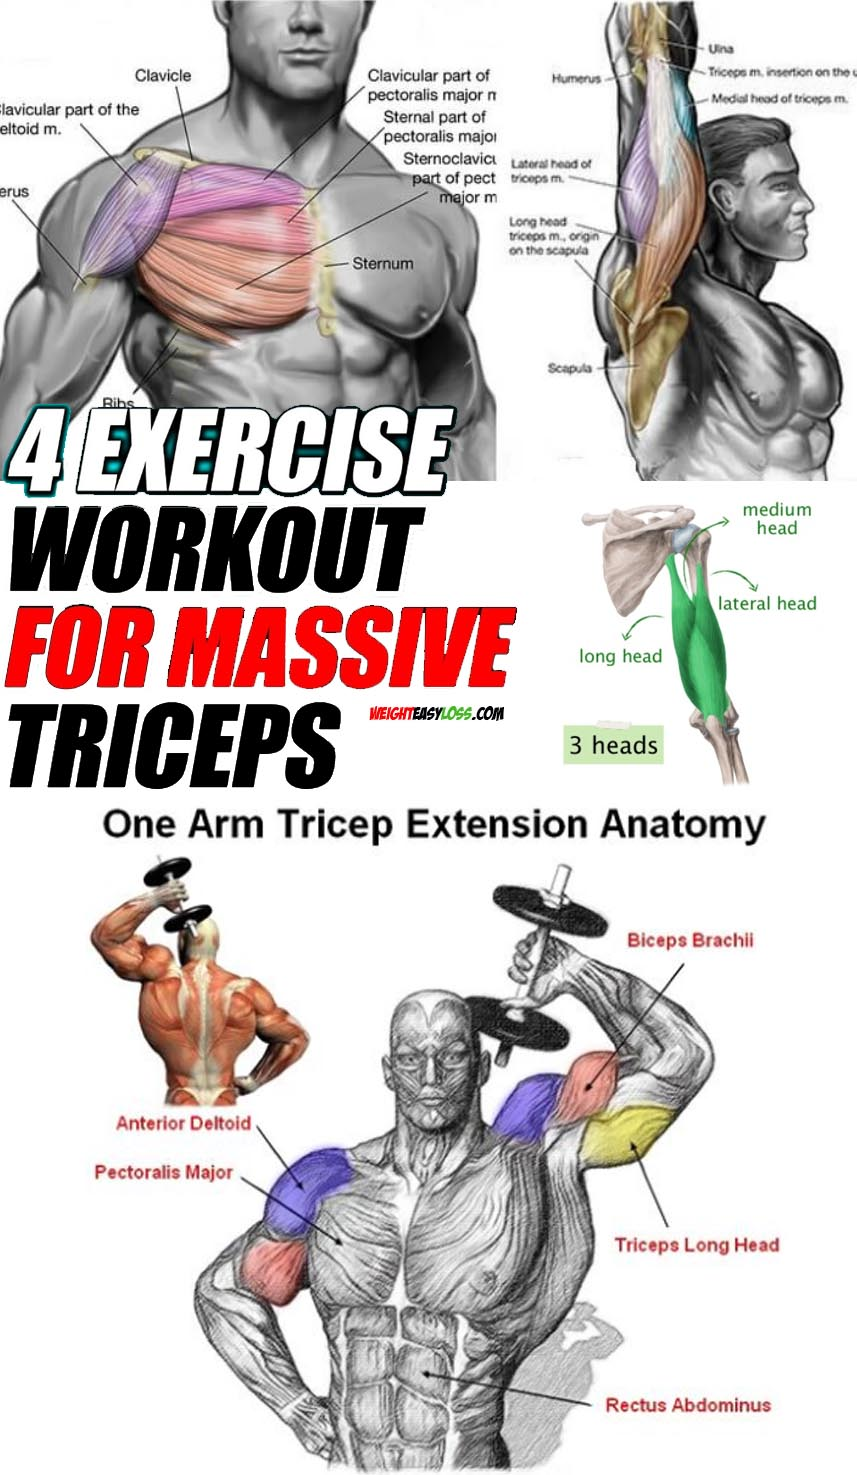 workout for massive triceps